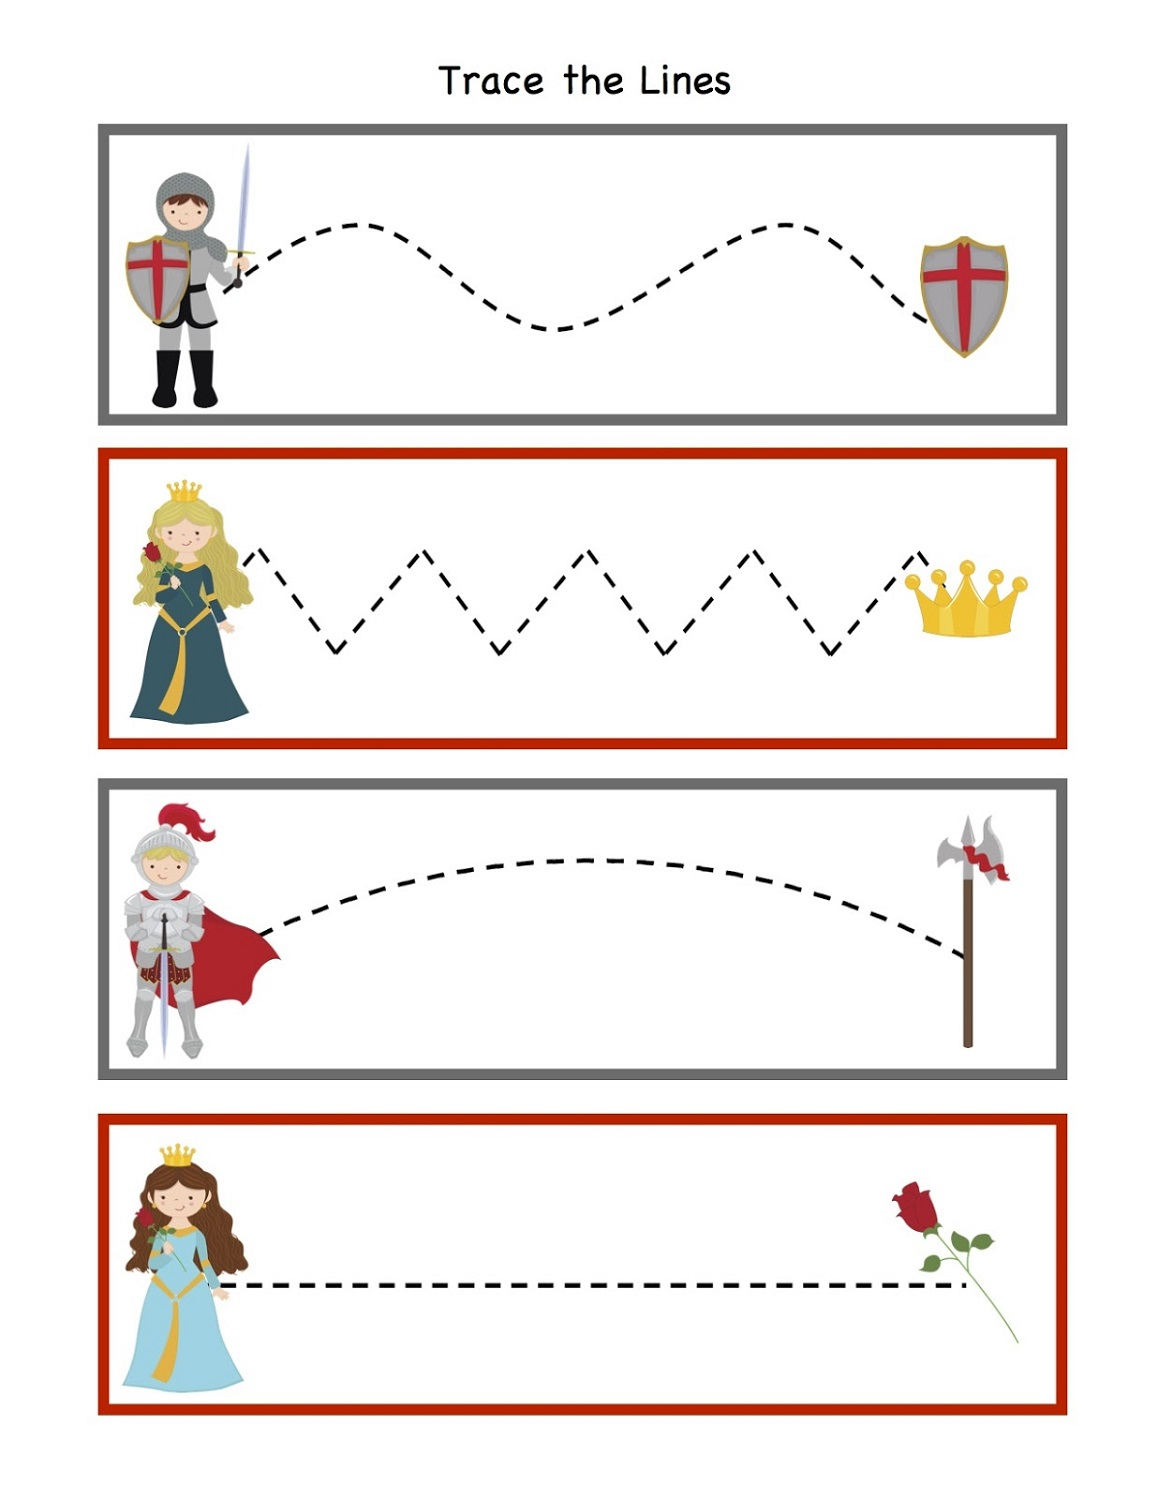 tracing medieval times activities for kids